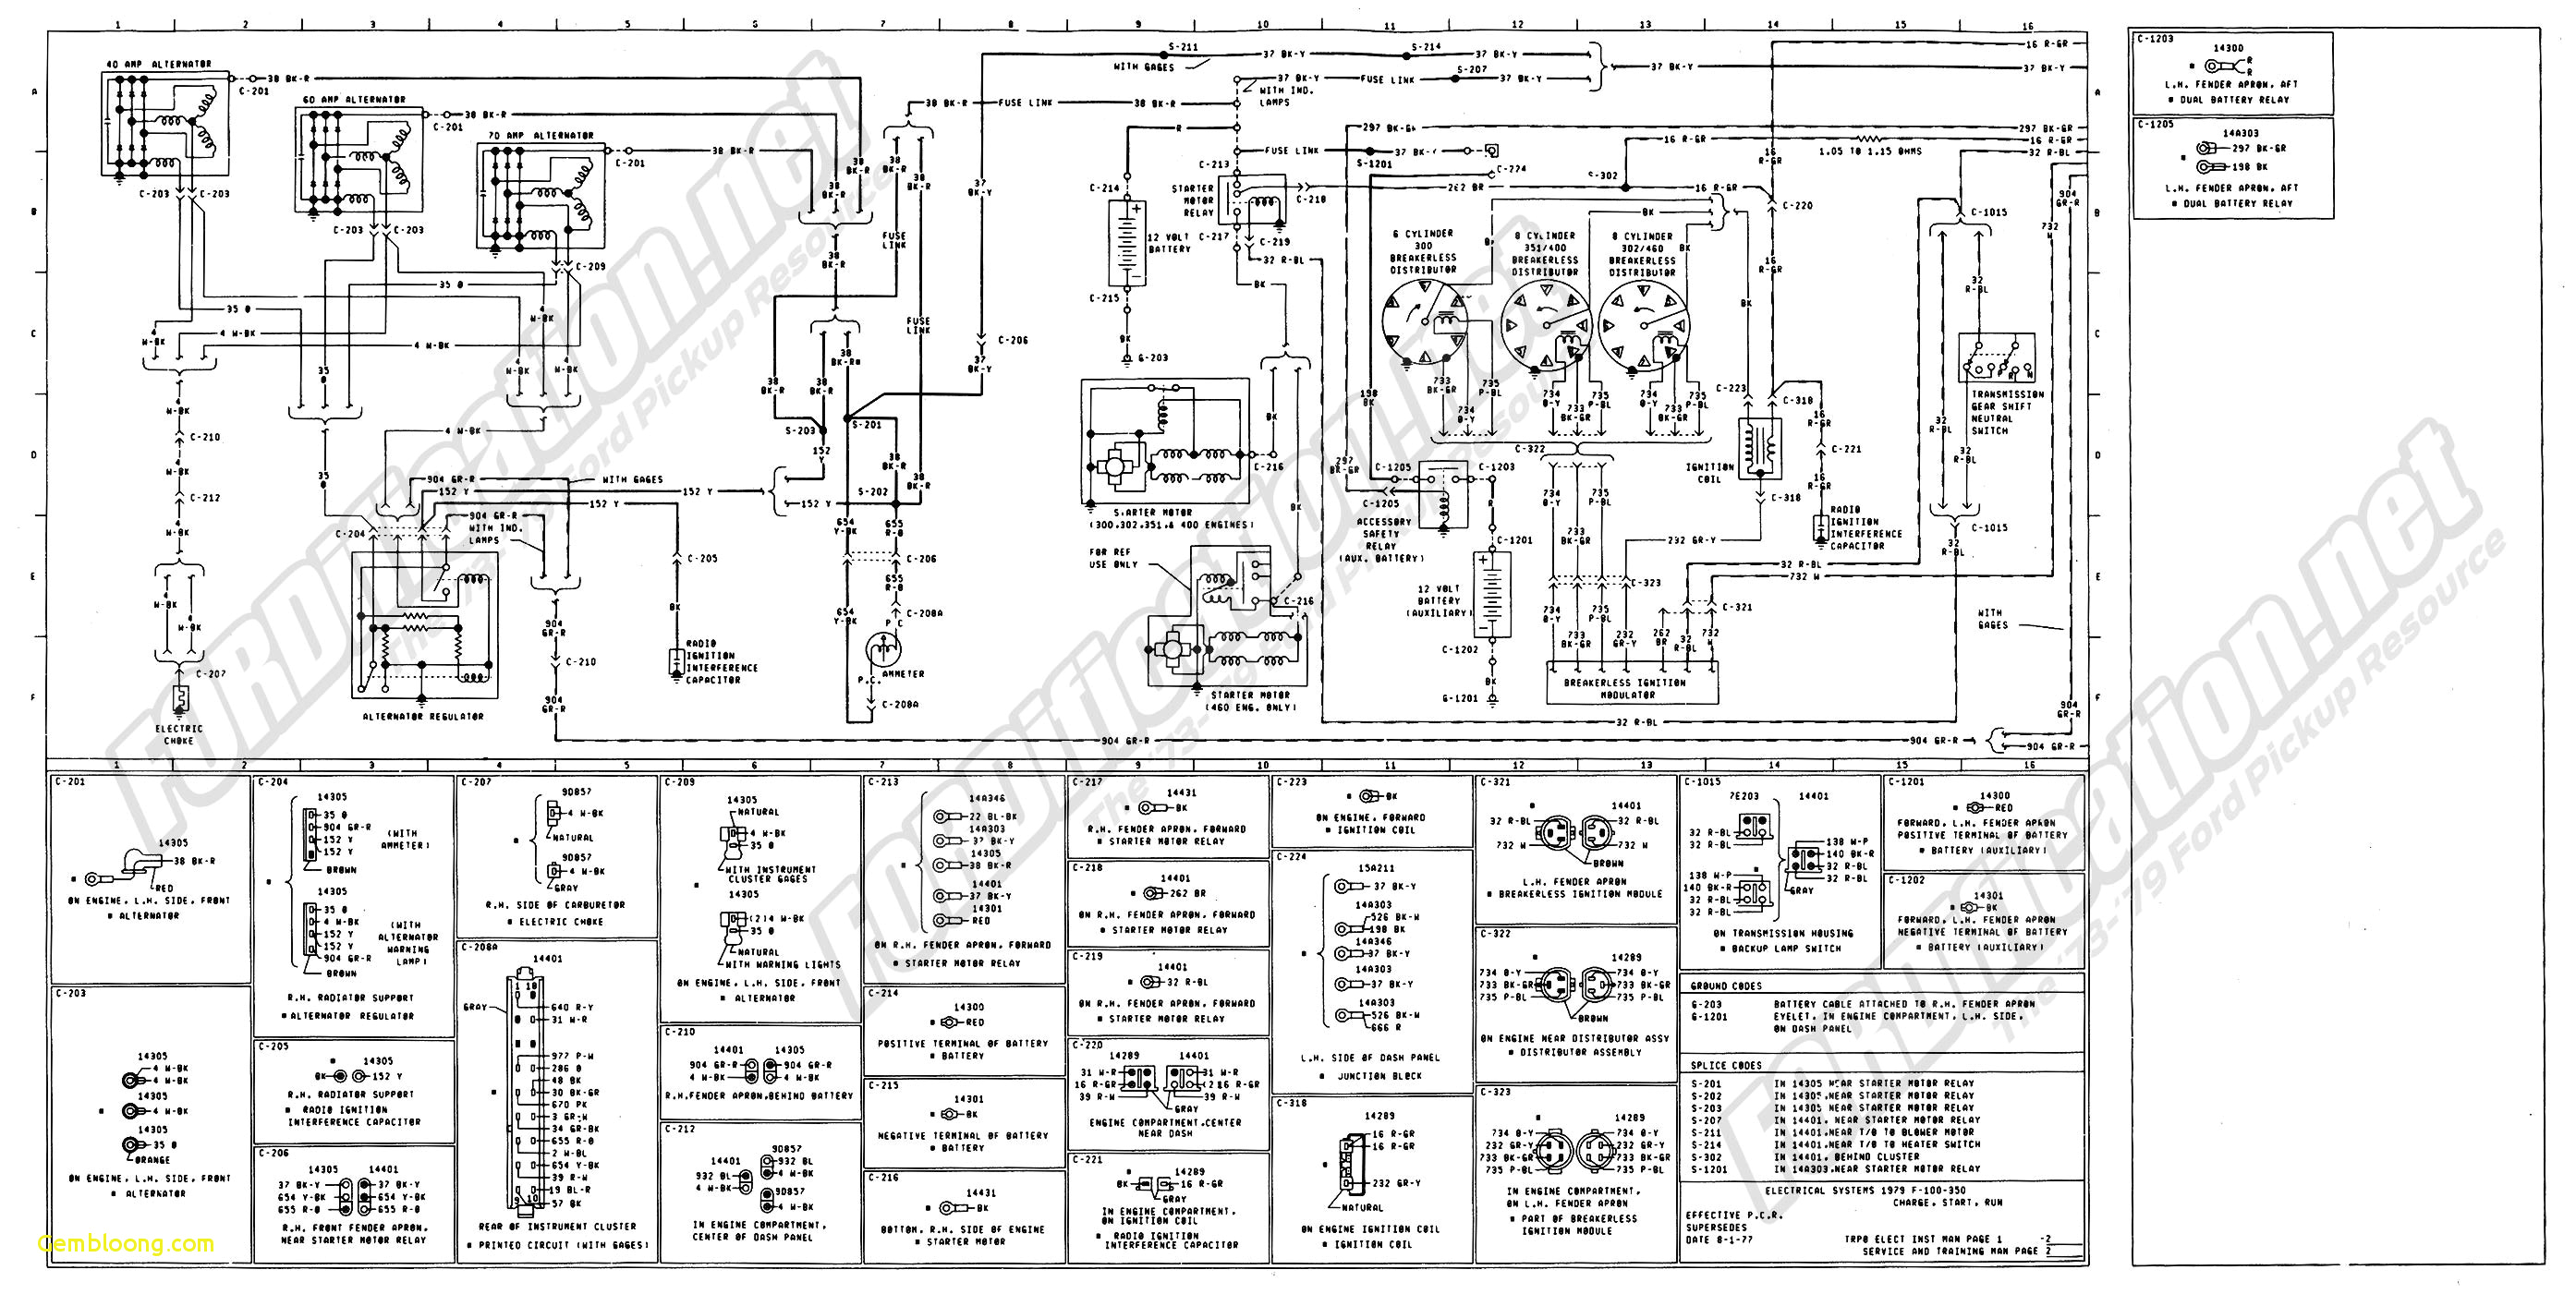 wiring diagram ford f150 headlights free download wiring diagram files free ford f150 wiring diagram 2004